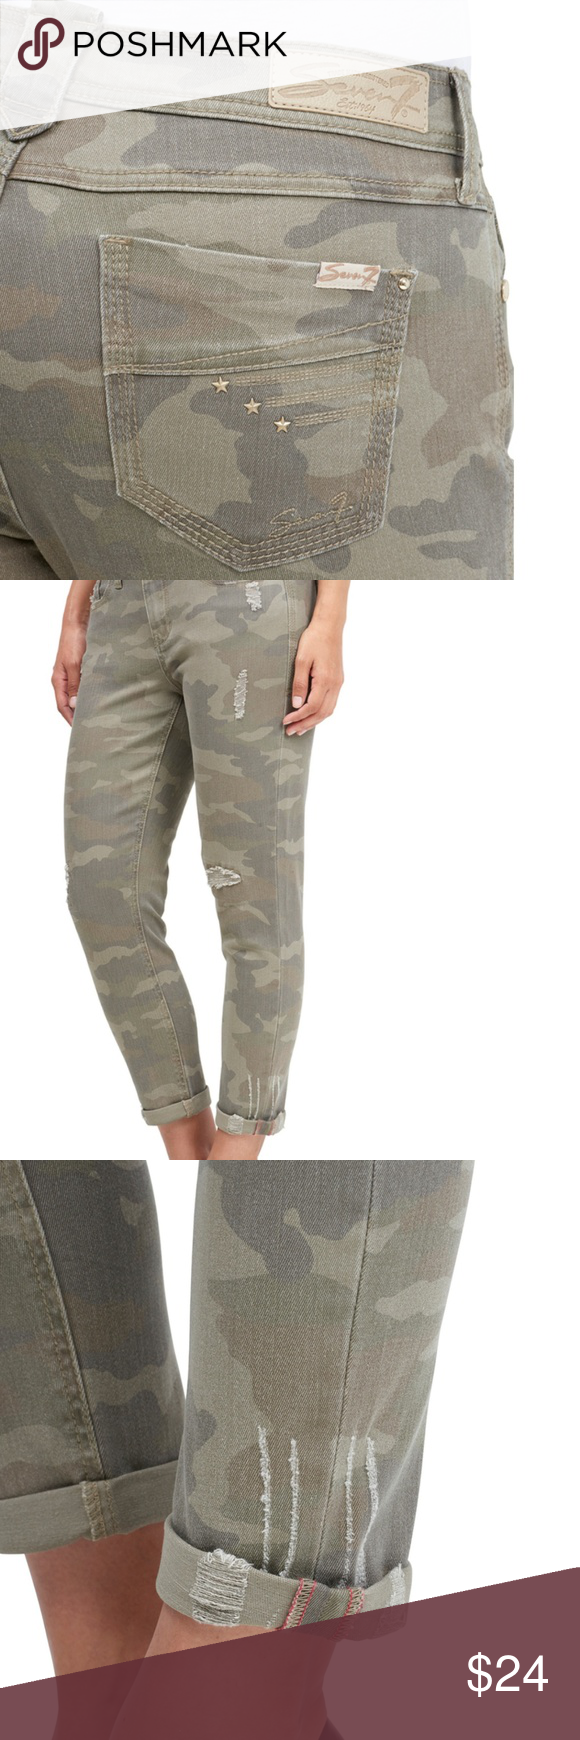 e9deec59a68b7 7 For All Mankind Army Camo Jeans Stretch Jegging 7 For All Mankind SKINNY  EASY FIT JEAN Skinny but not tight, thisfive-pocket jean features a muted  camo ...